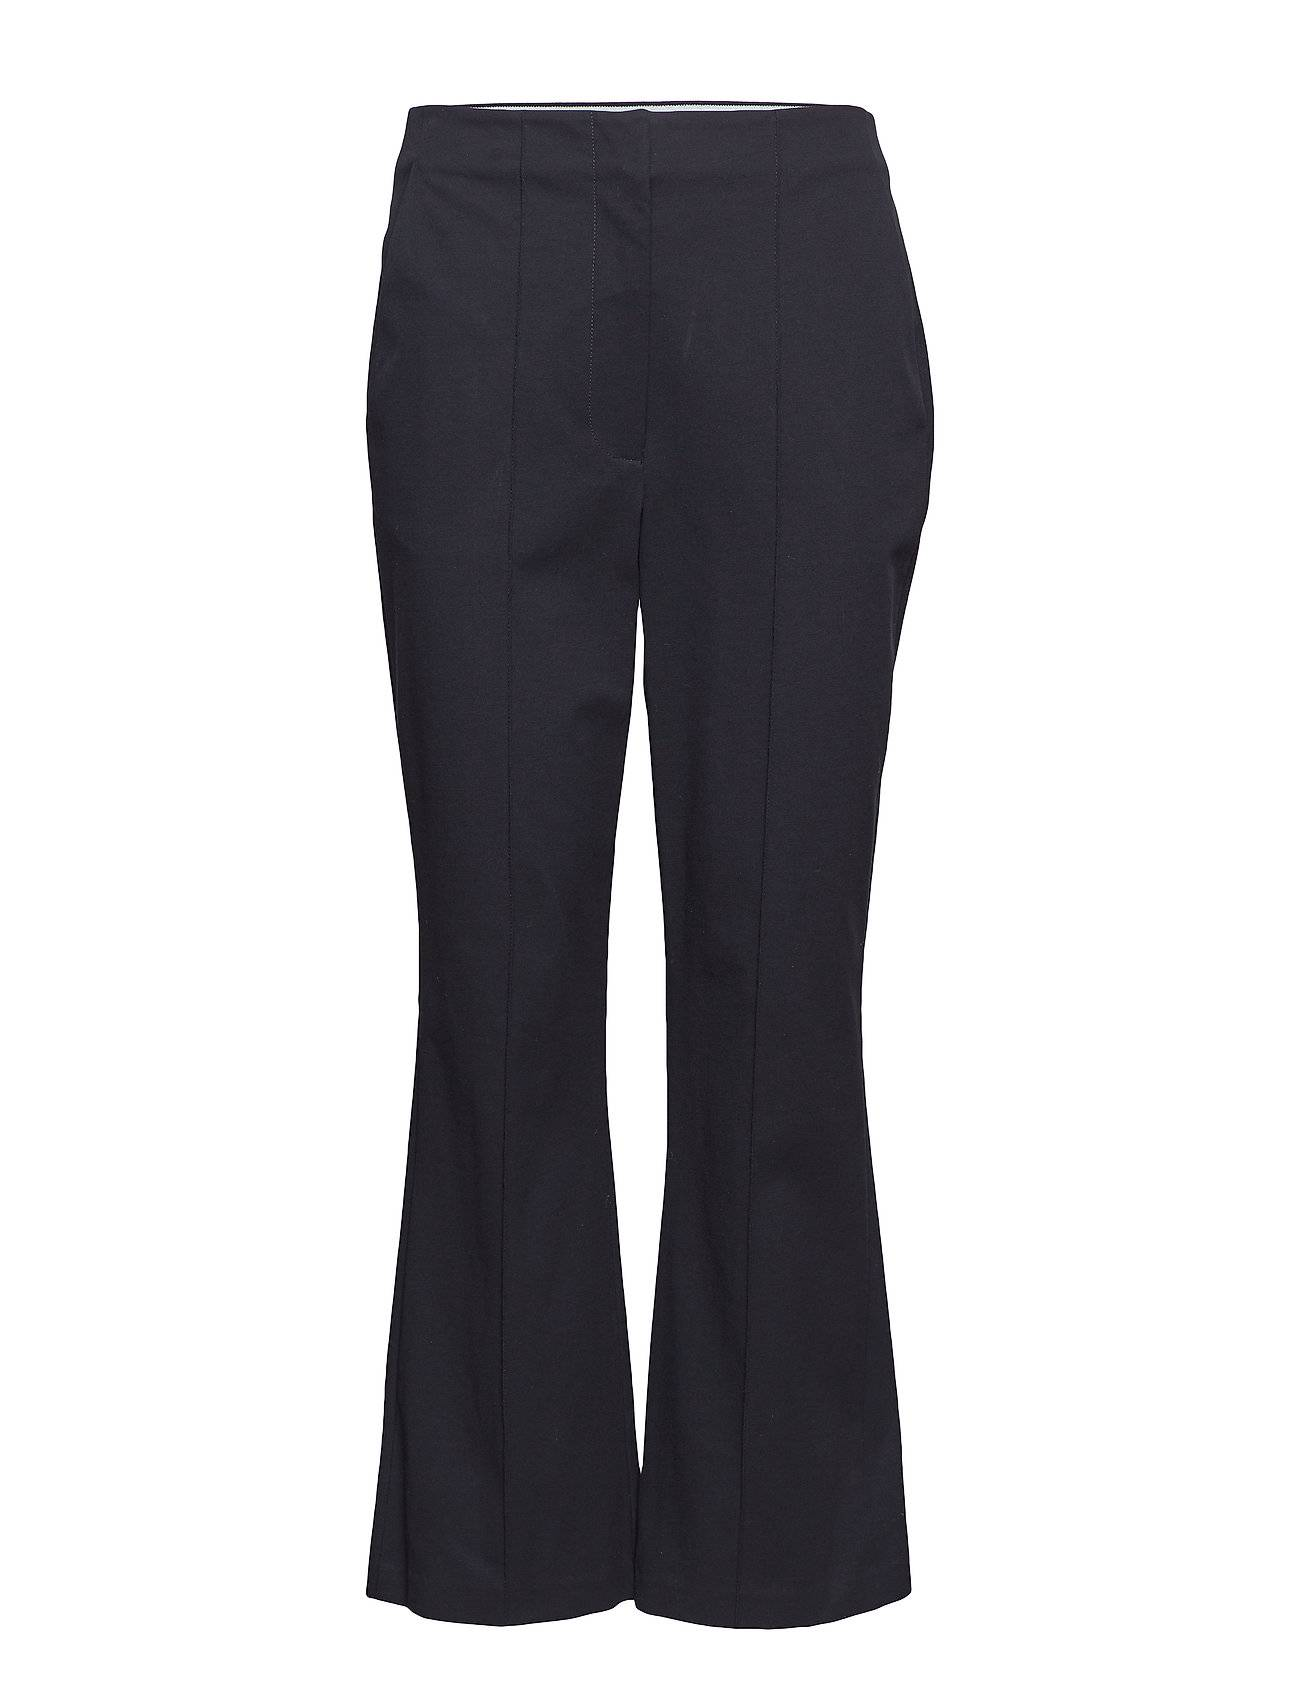 T by Alexander Wang Stretch Suiting Pant Withlogo Elastic Detail